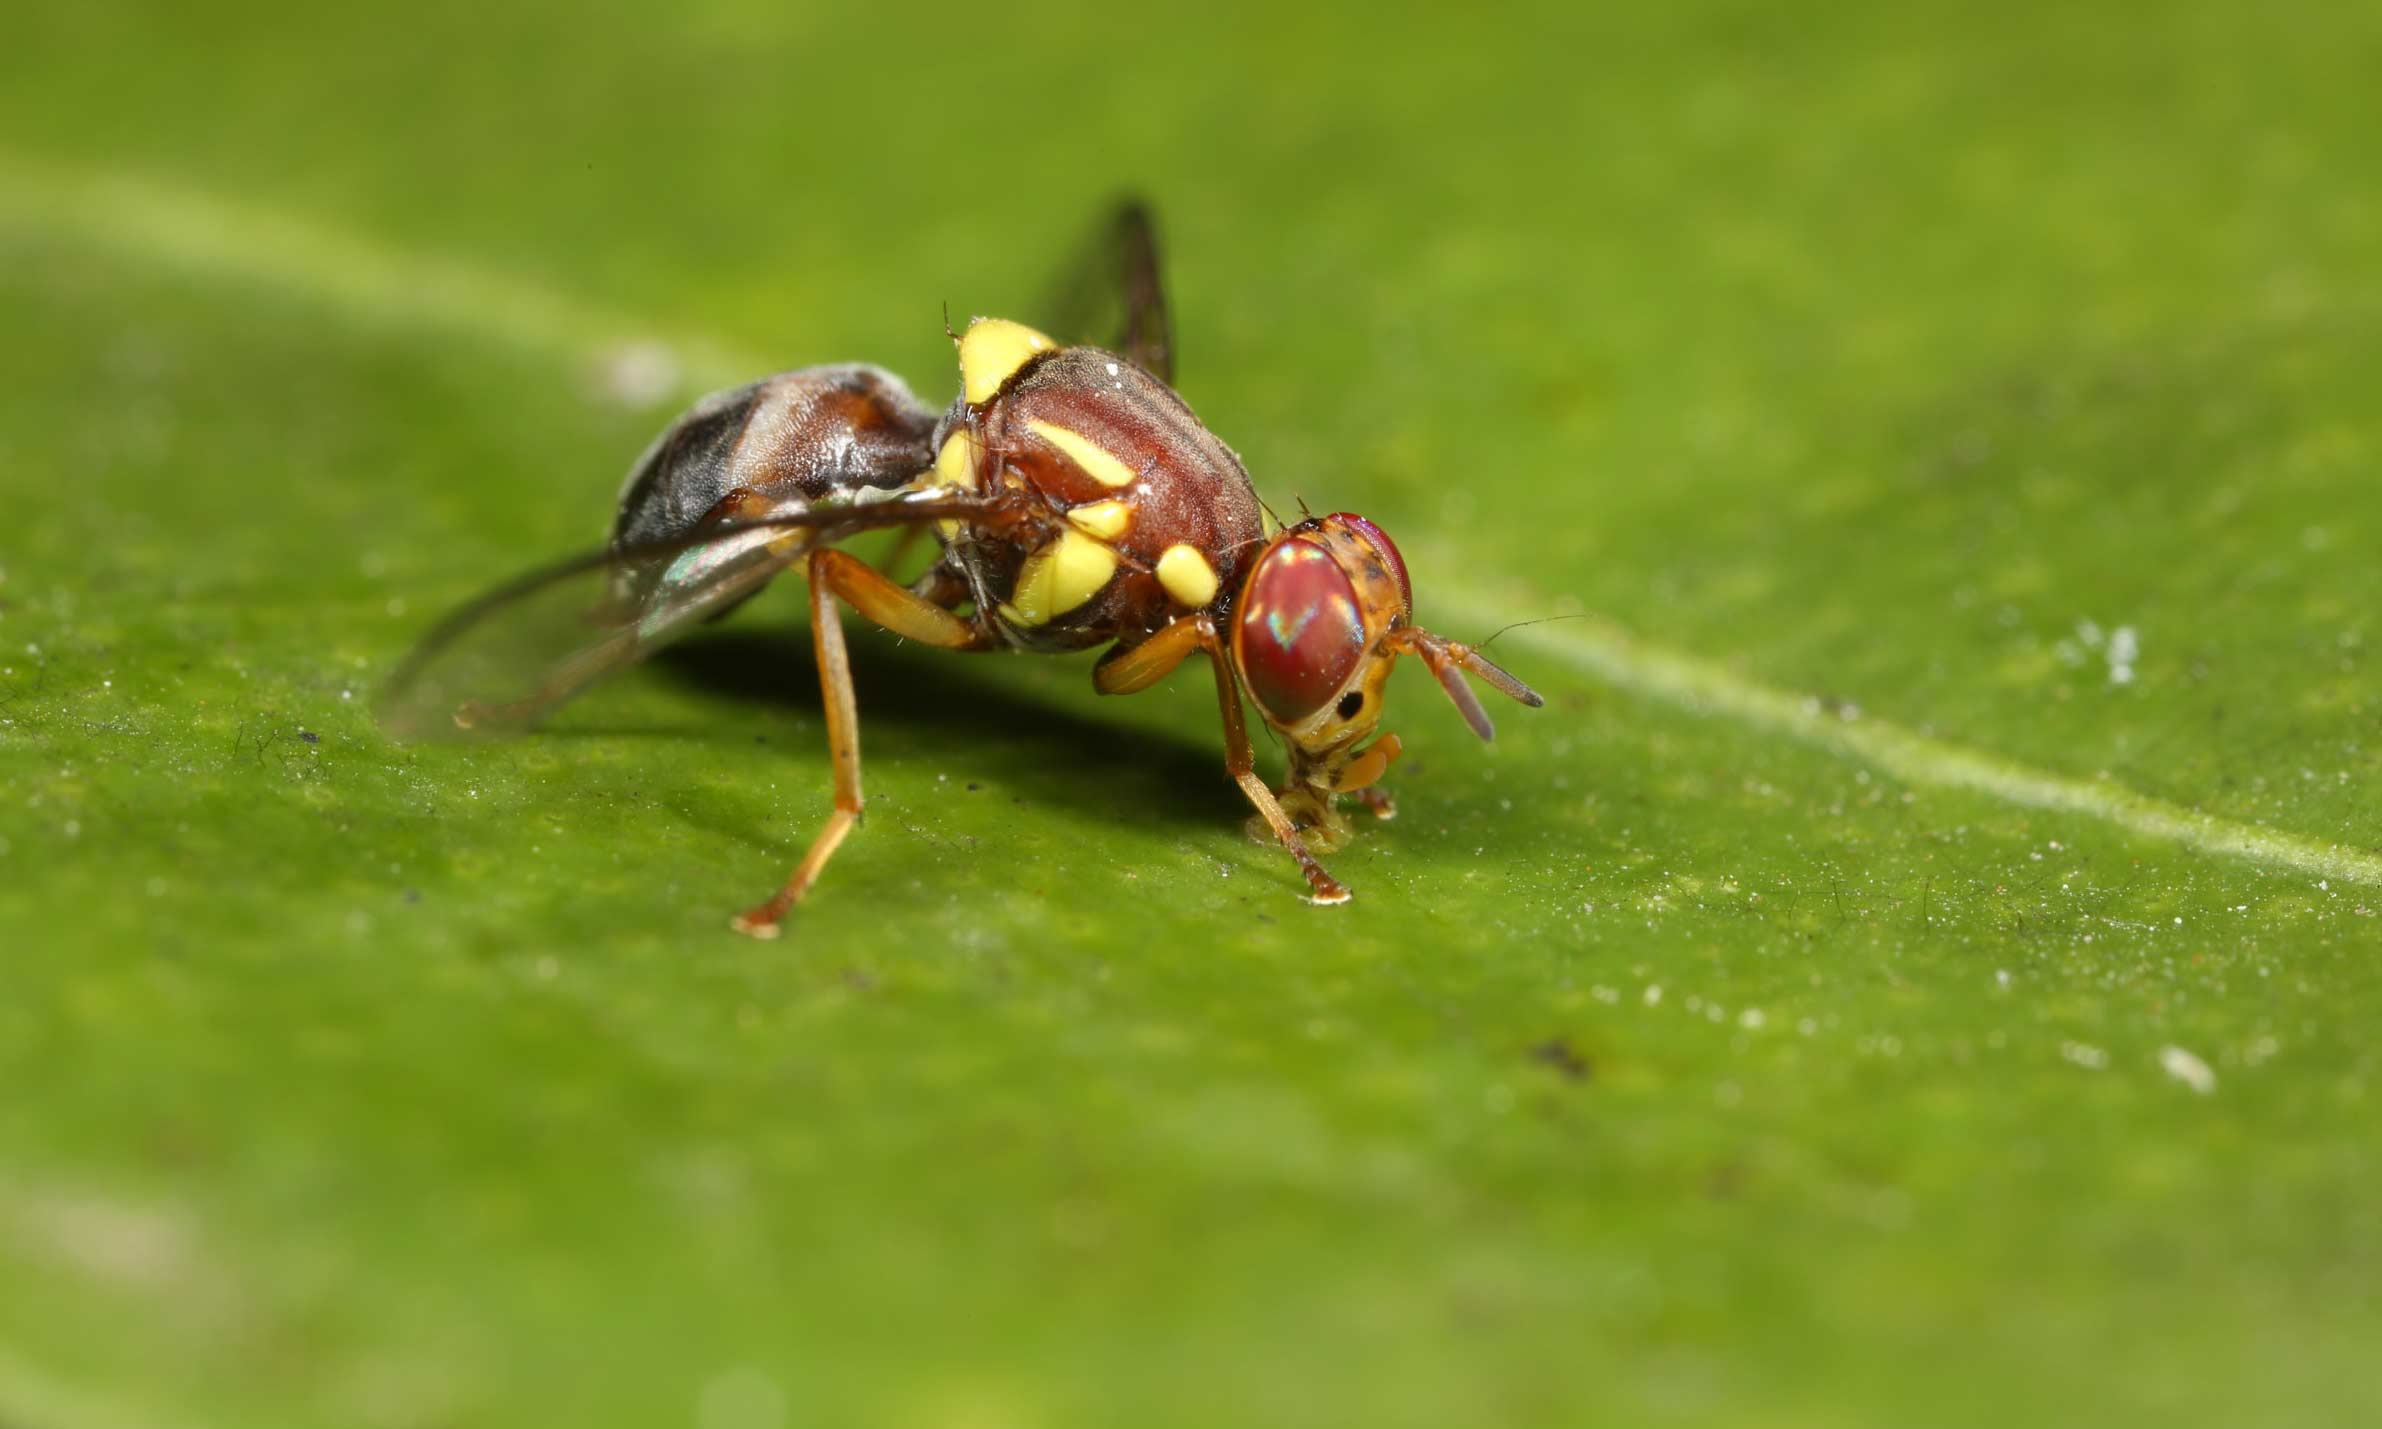 Close up of a fruit fly on a green leaf.